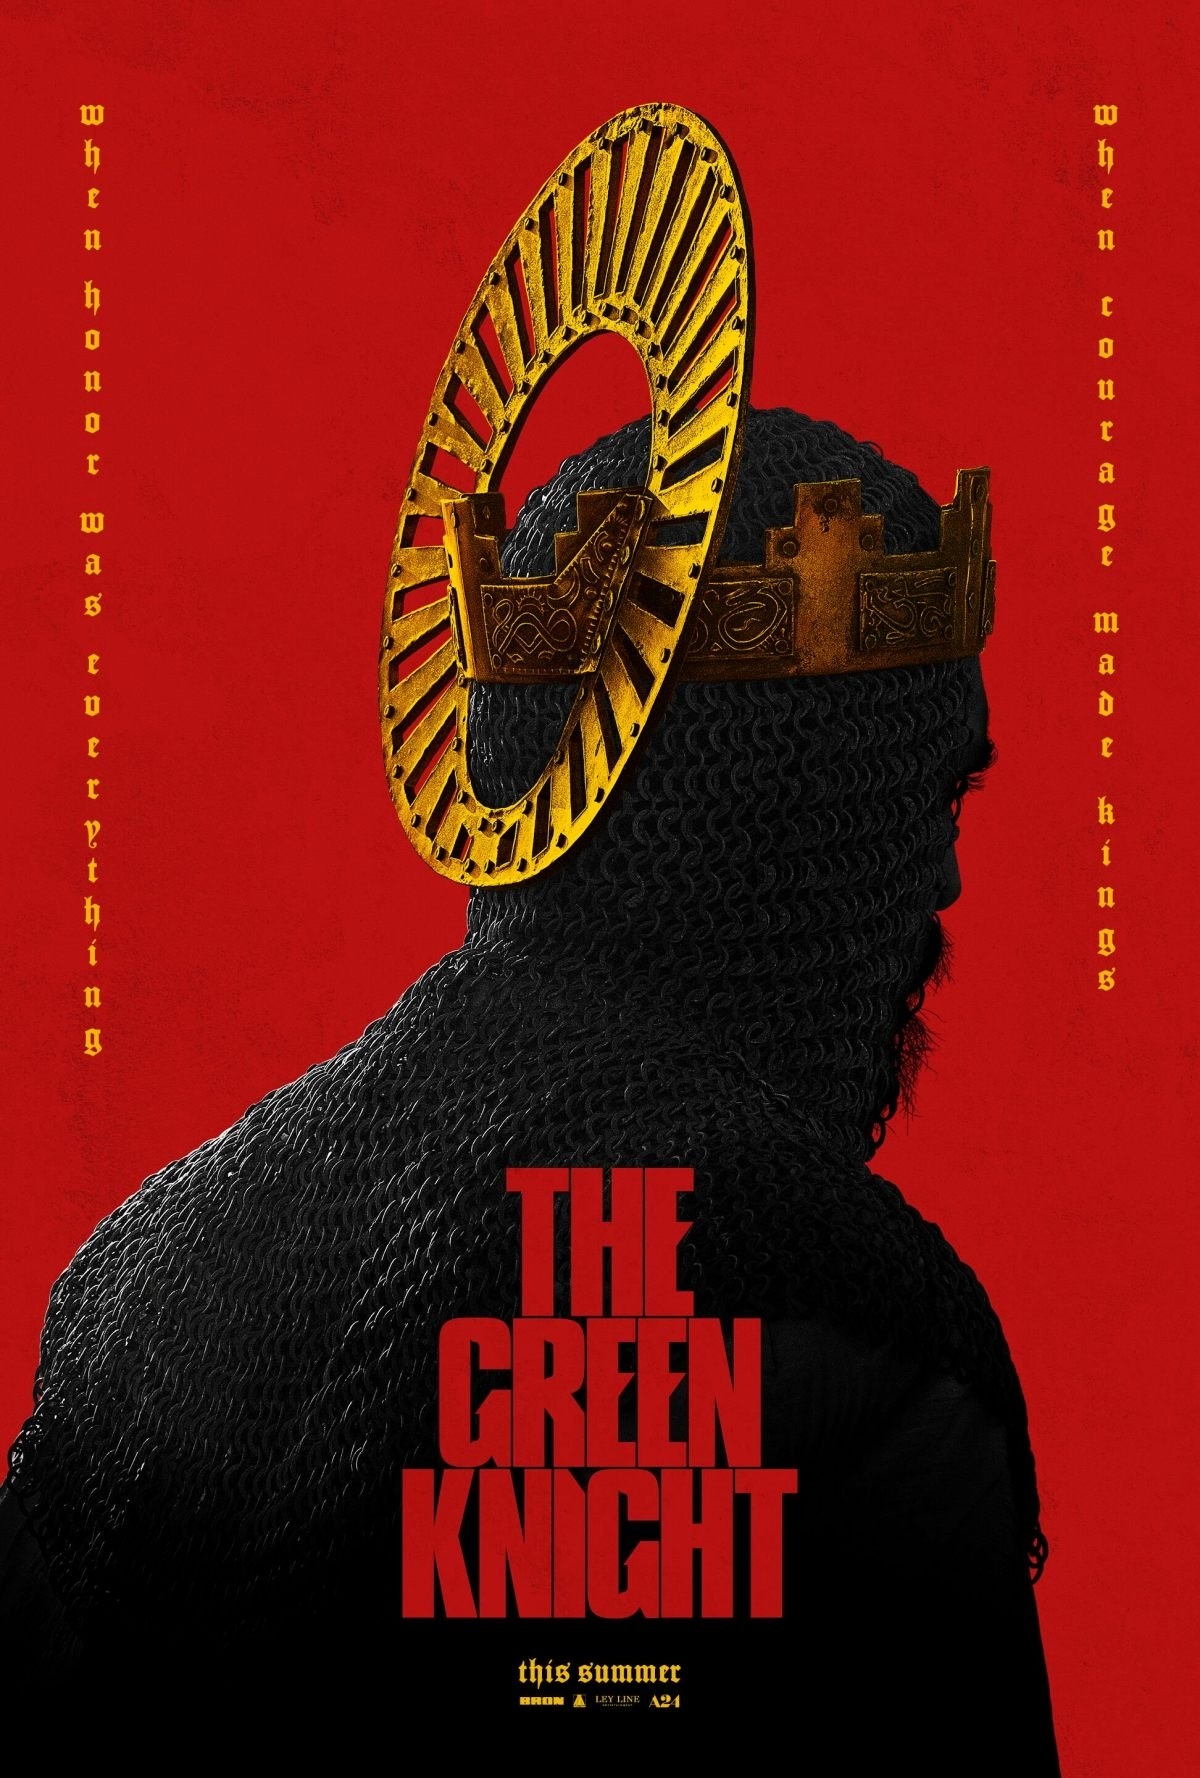 The Green Knight Teaser Poster